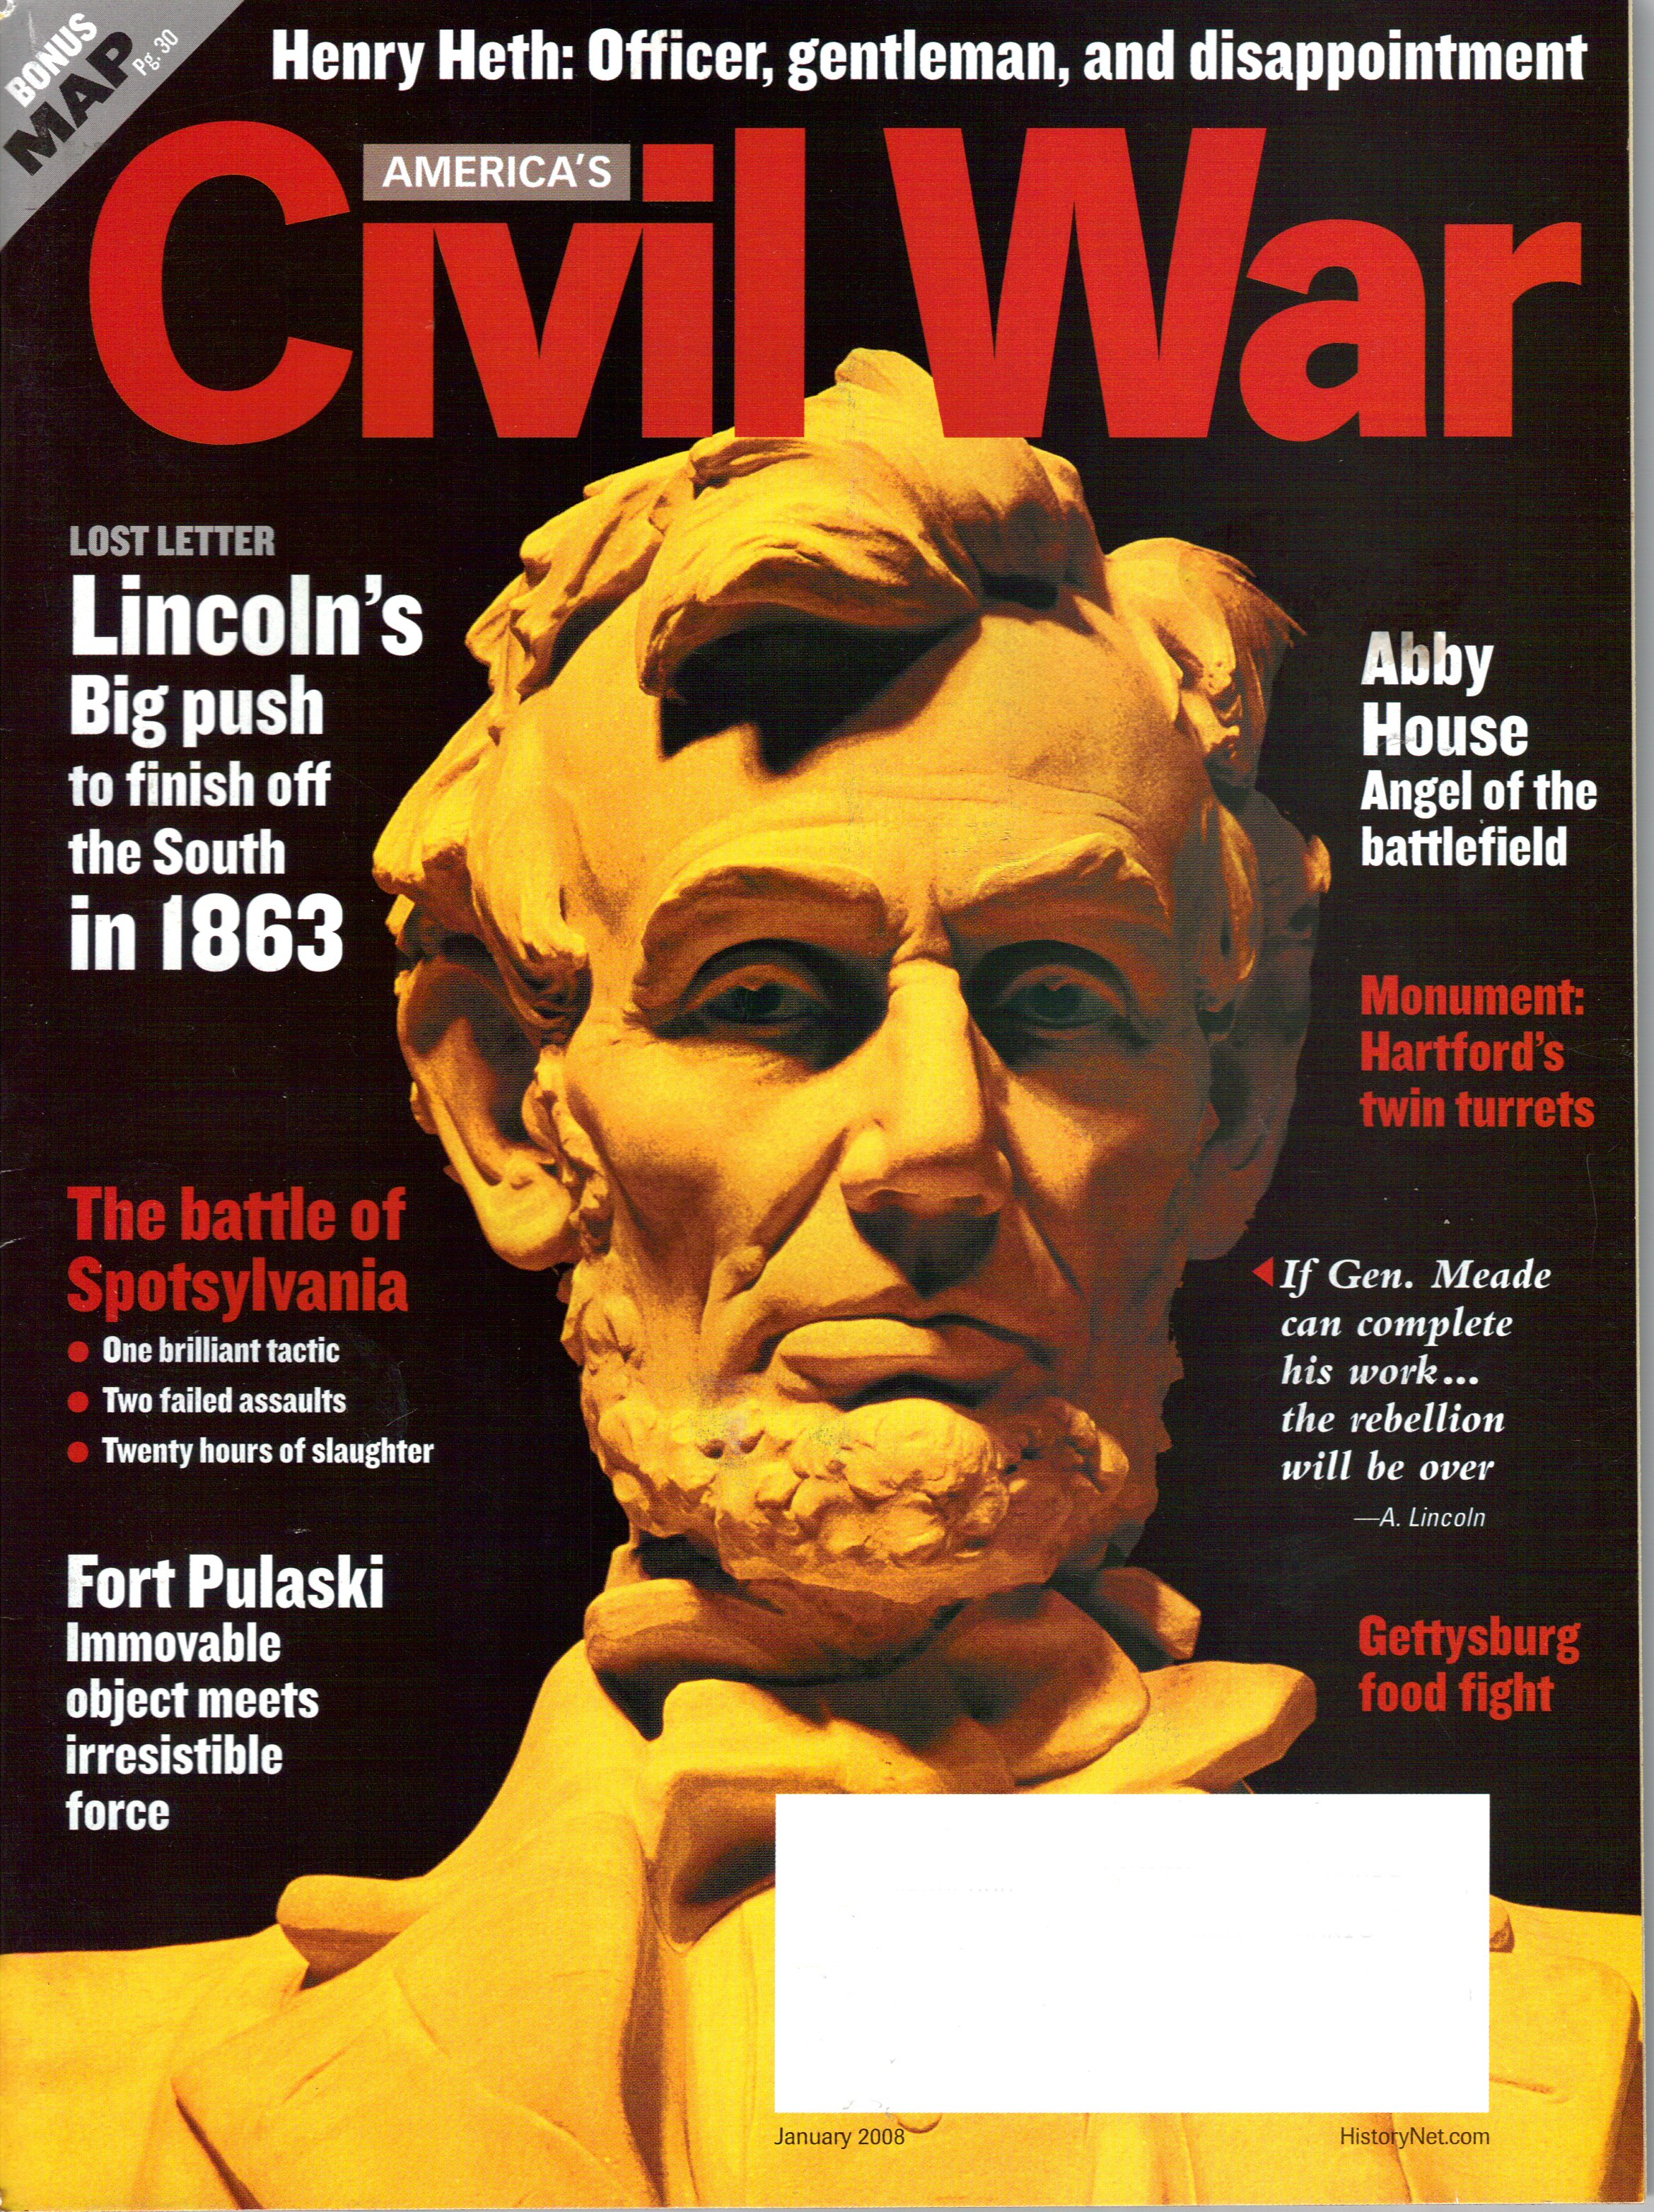 Americas Civil War, Volume 20, Number 6 (January 2008)